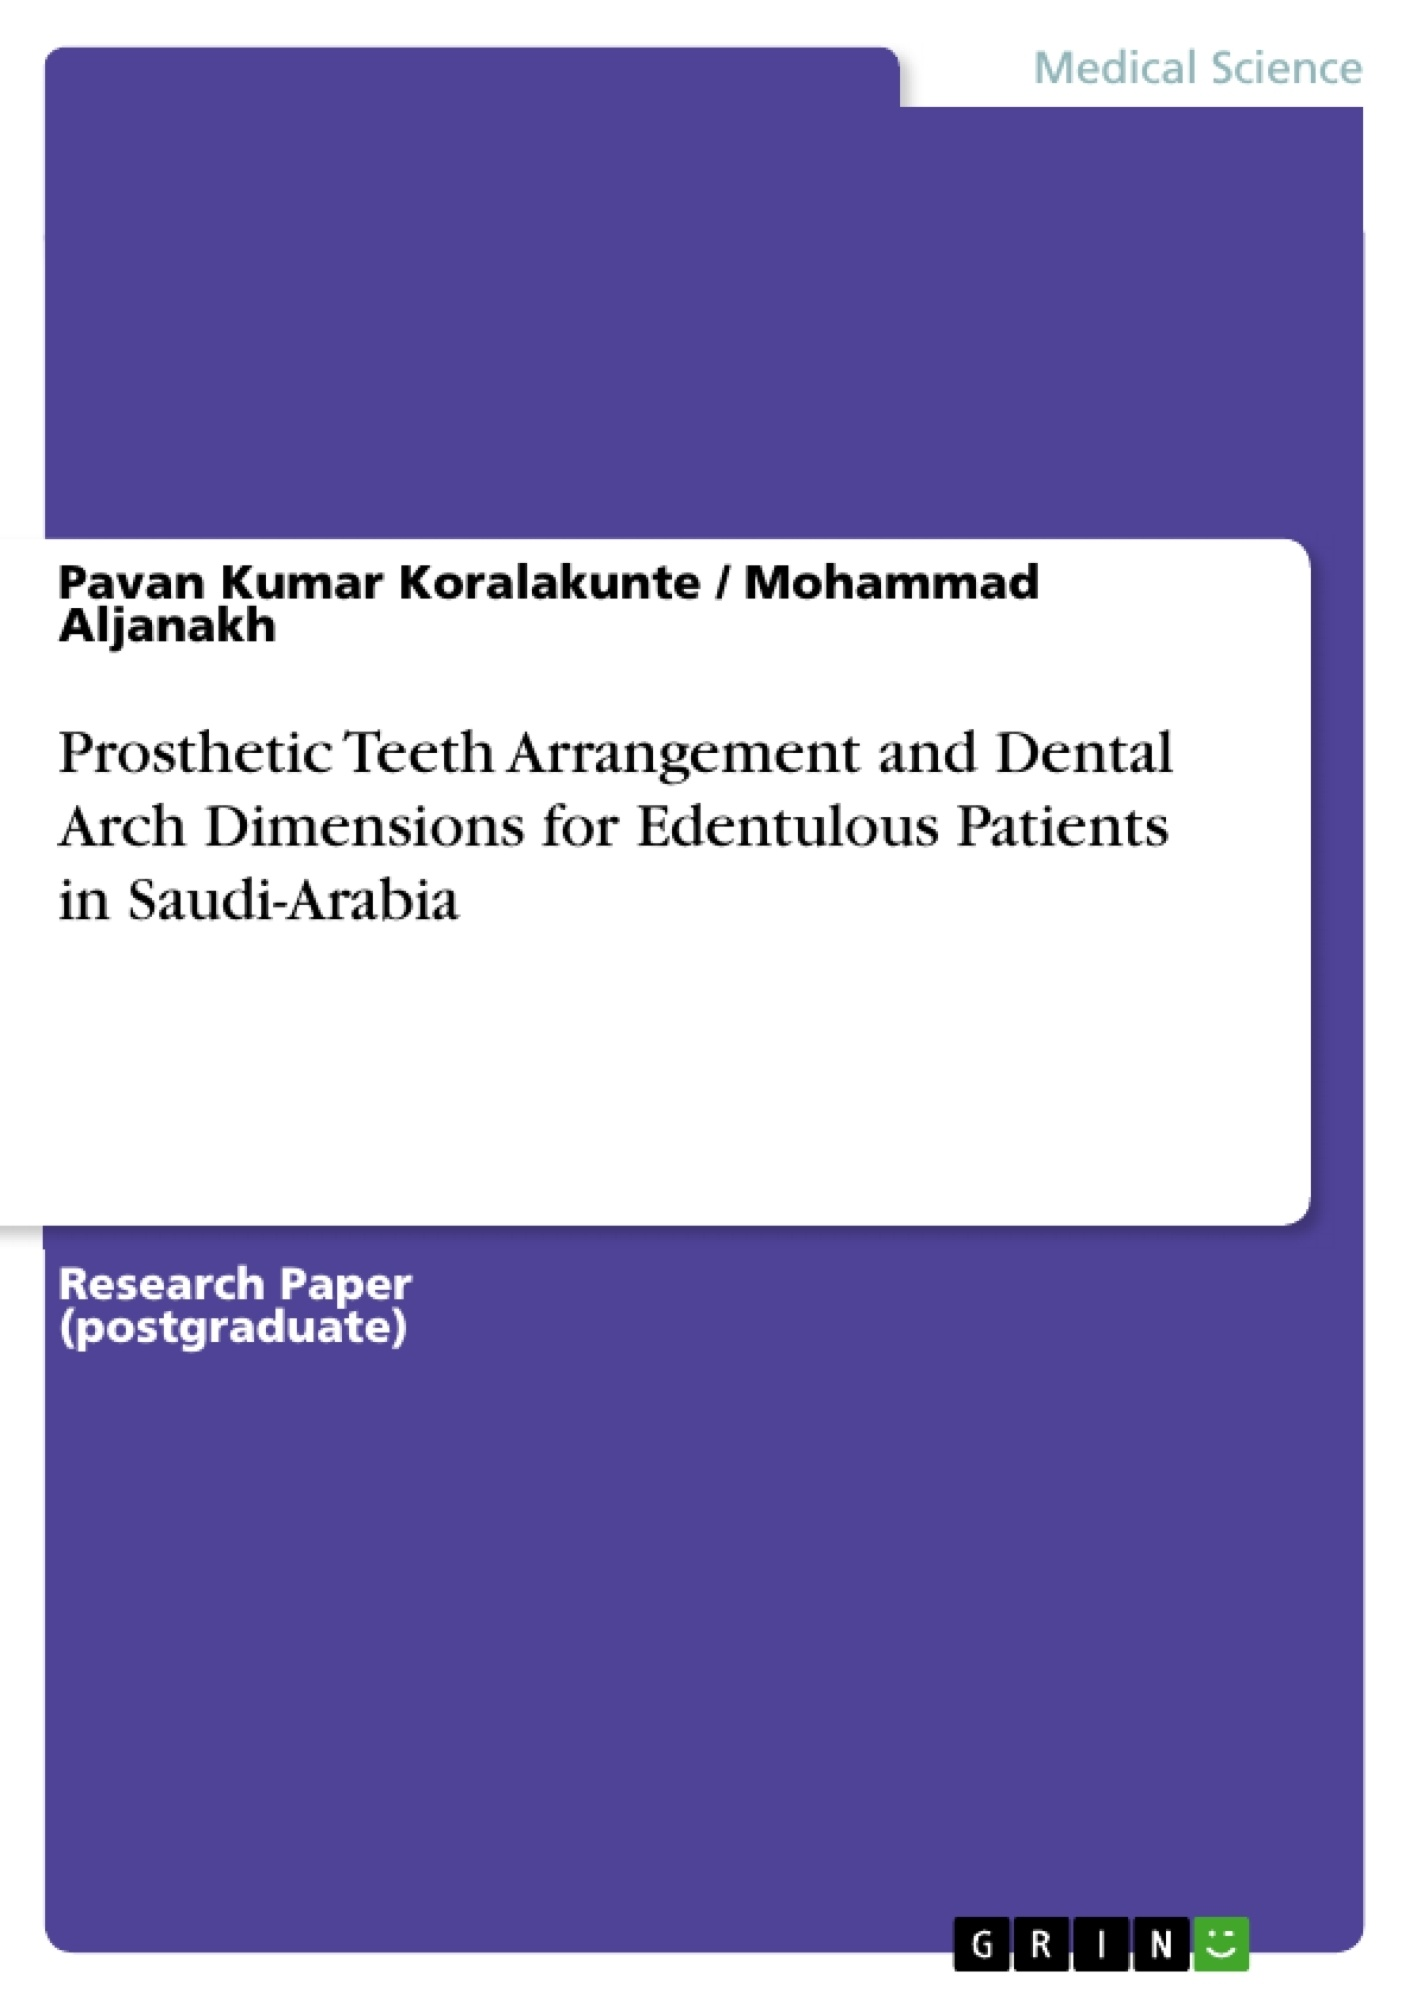 Title: Prosthetic Teeth Arrangement and Dental Arch Dimensions for Edentulous Patients in Saudi-Arabia